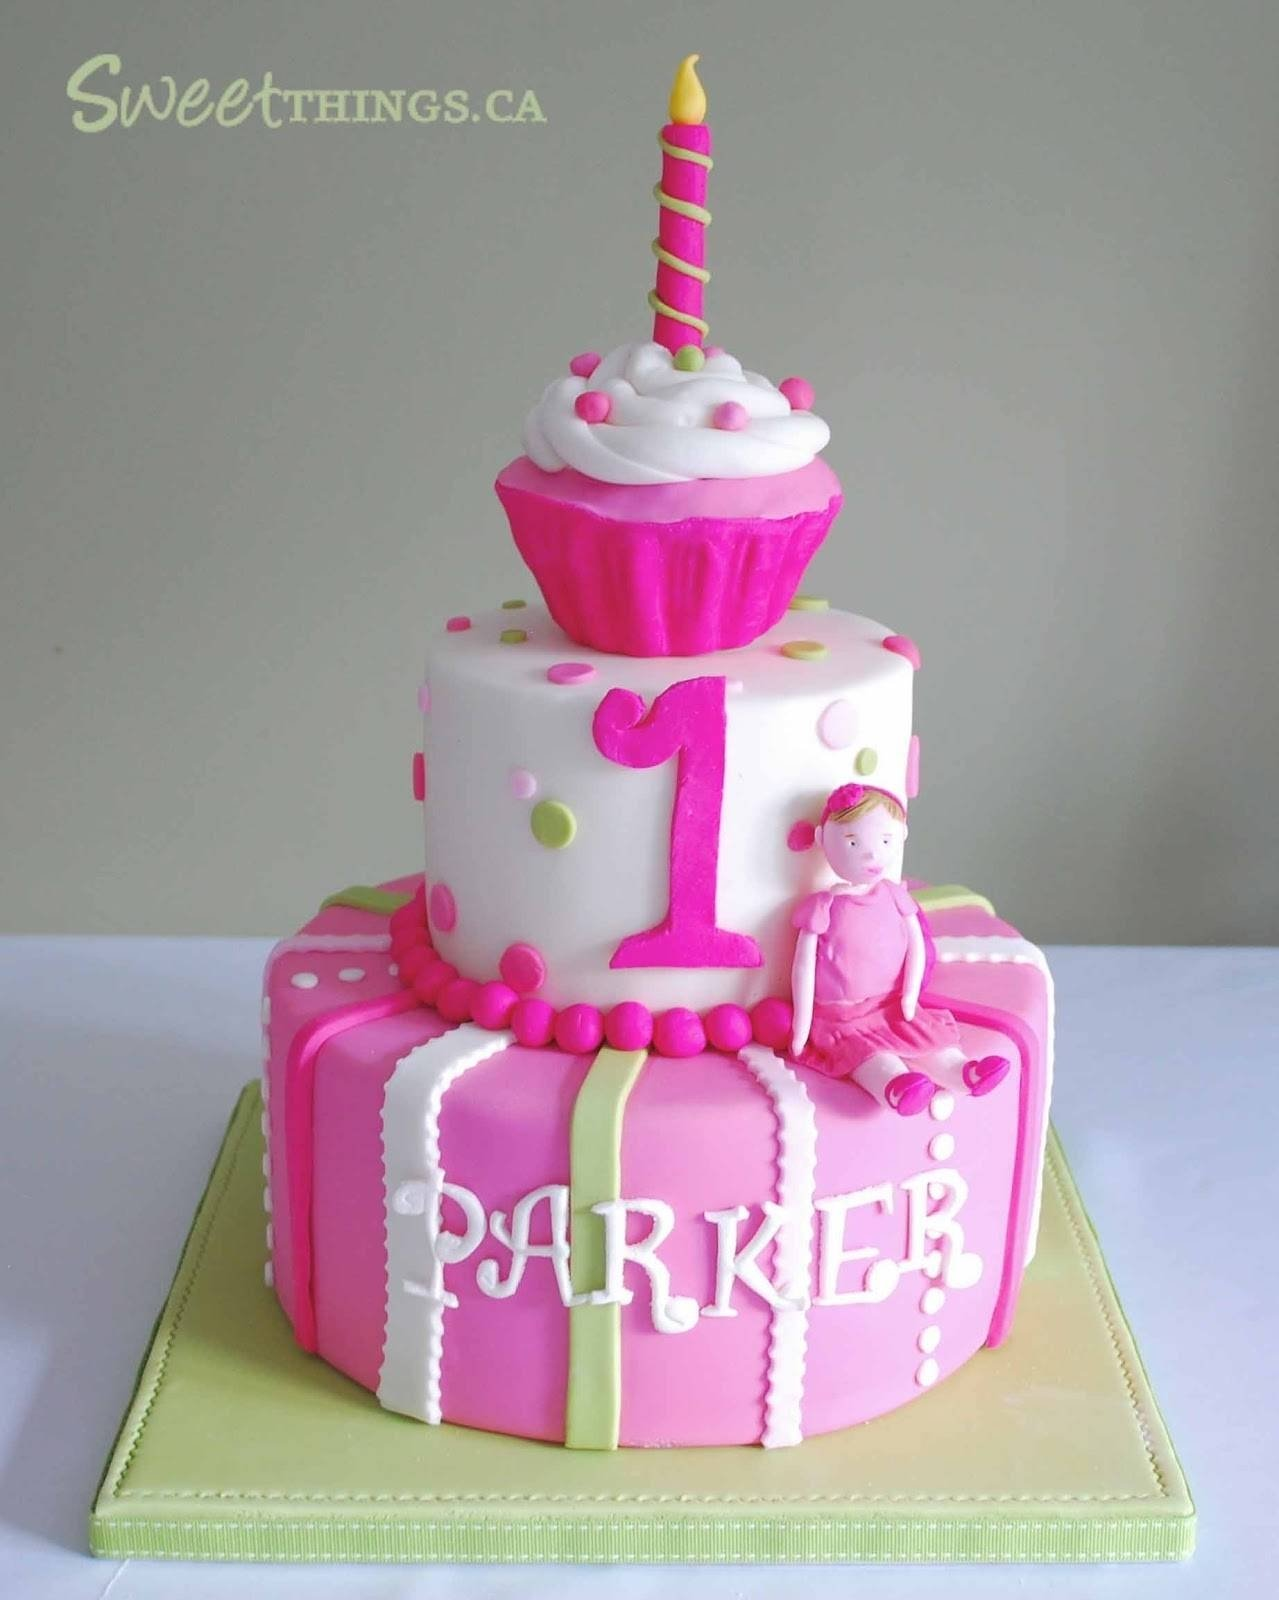 10 Beautiful 1St Birthday Cake Ideas For Girl 1st birthday girl ideas cake 1st birthday cake ideas for girls 2020